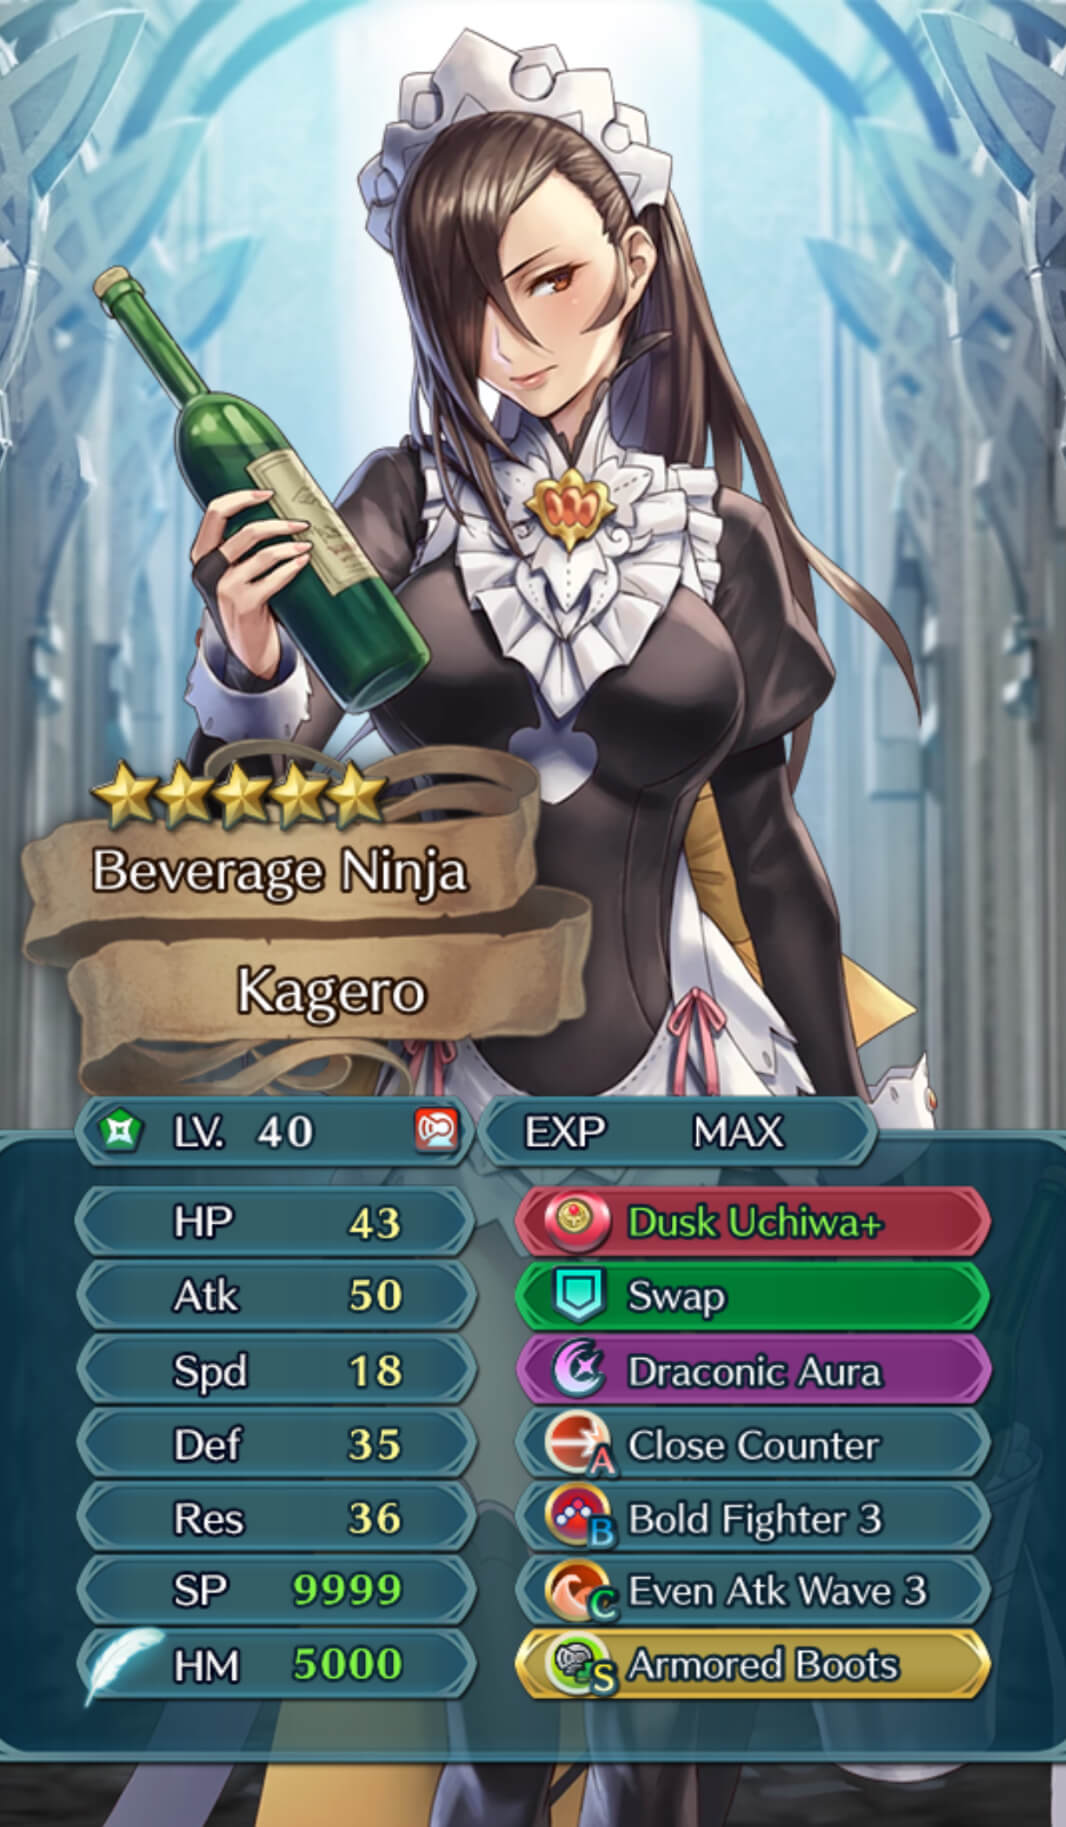 What's your way of dealing with Reinhardt + B Lyn on AR defense